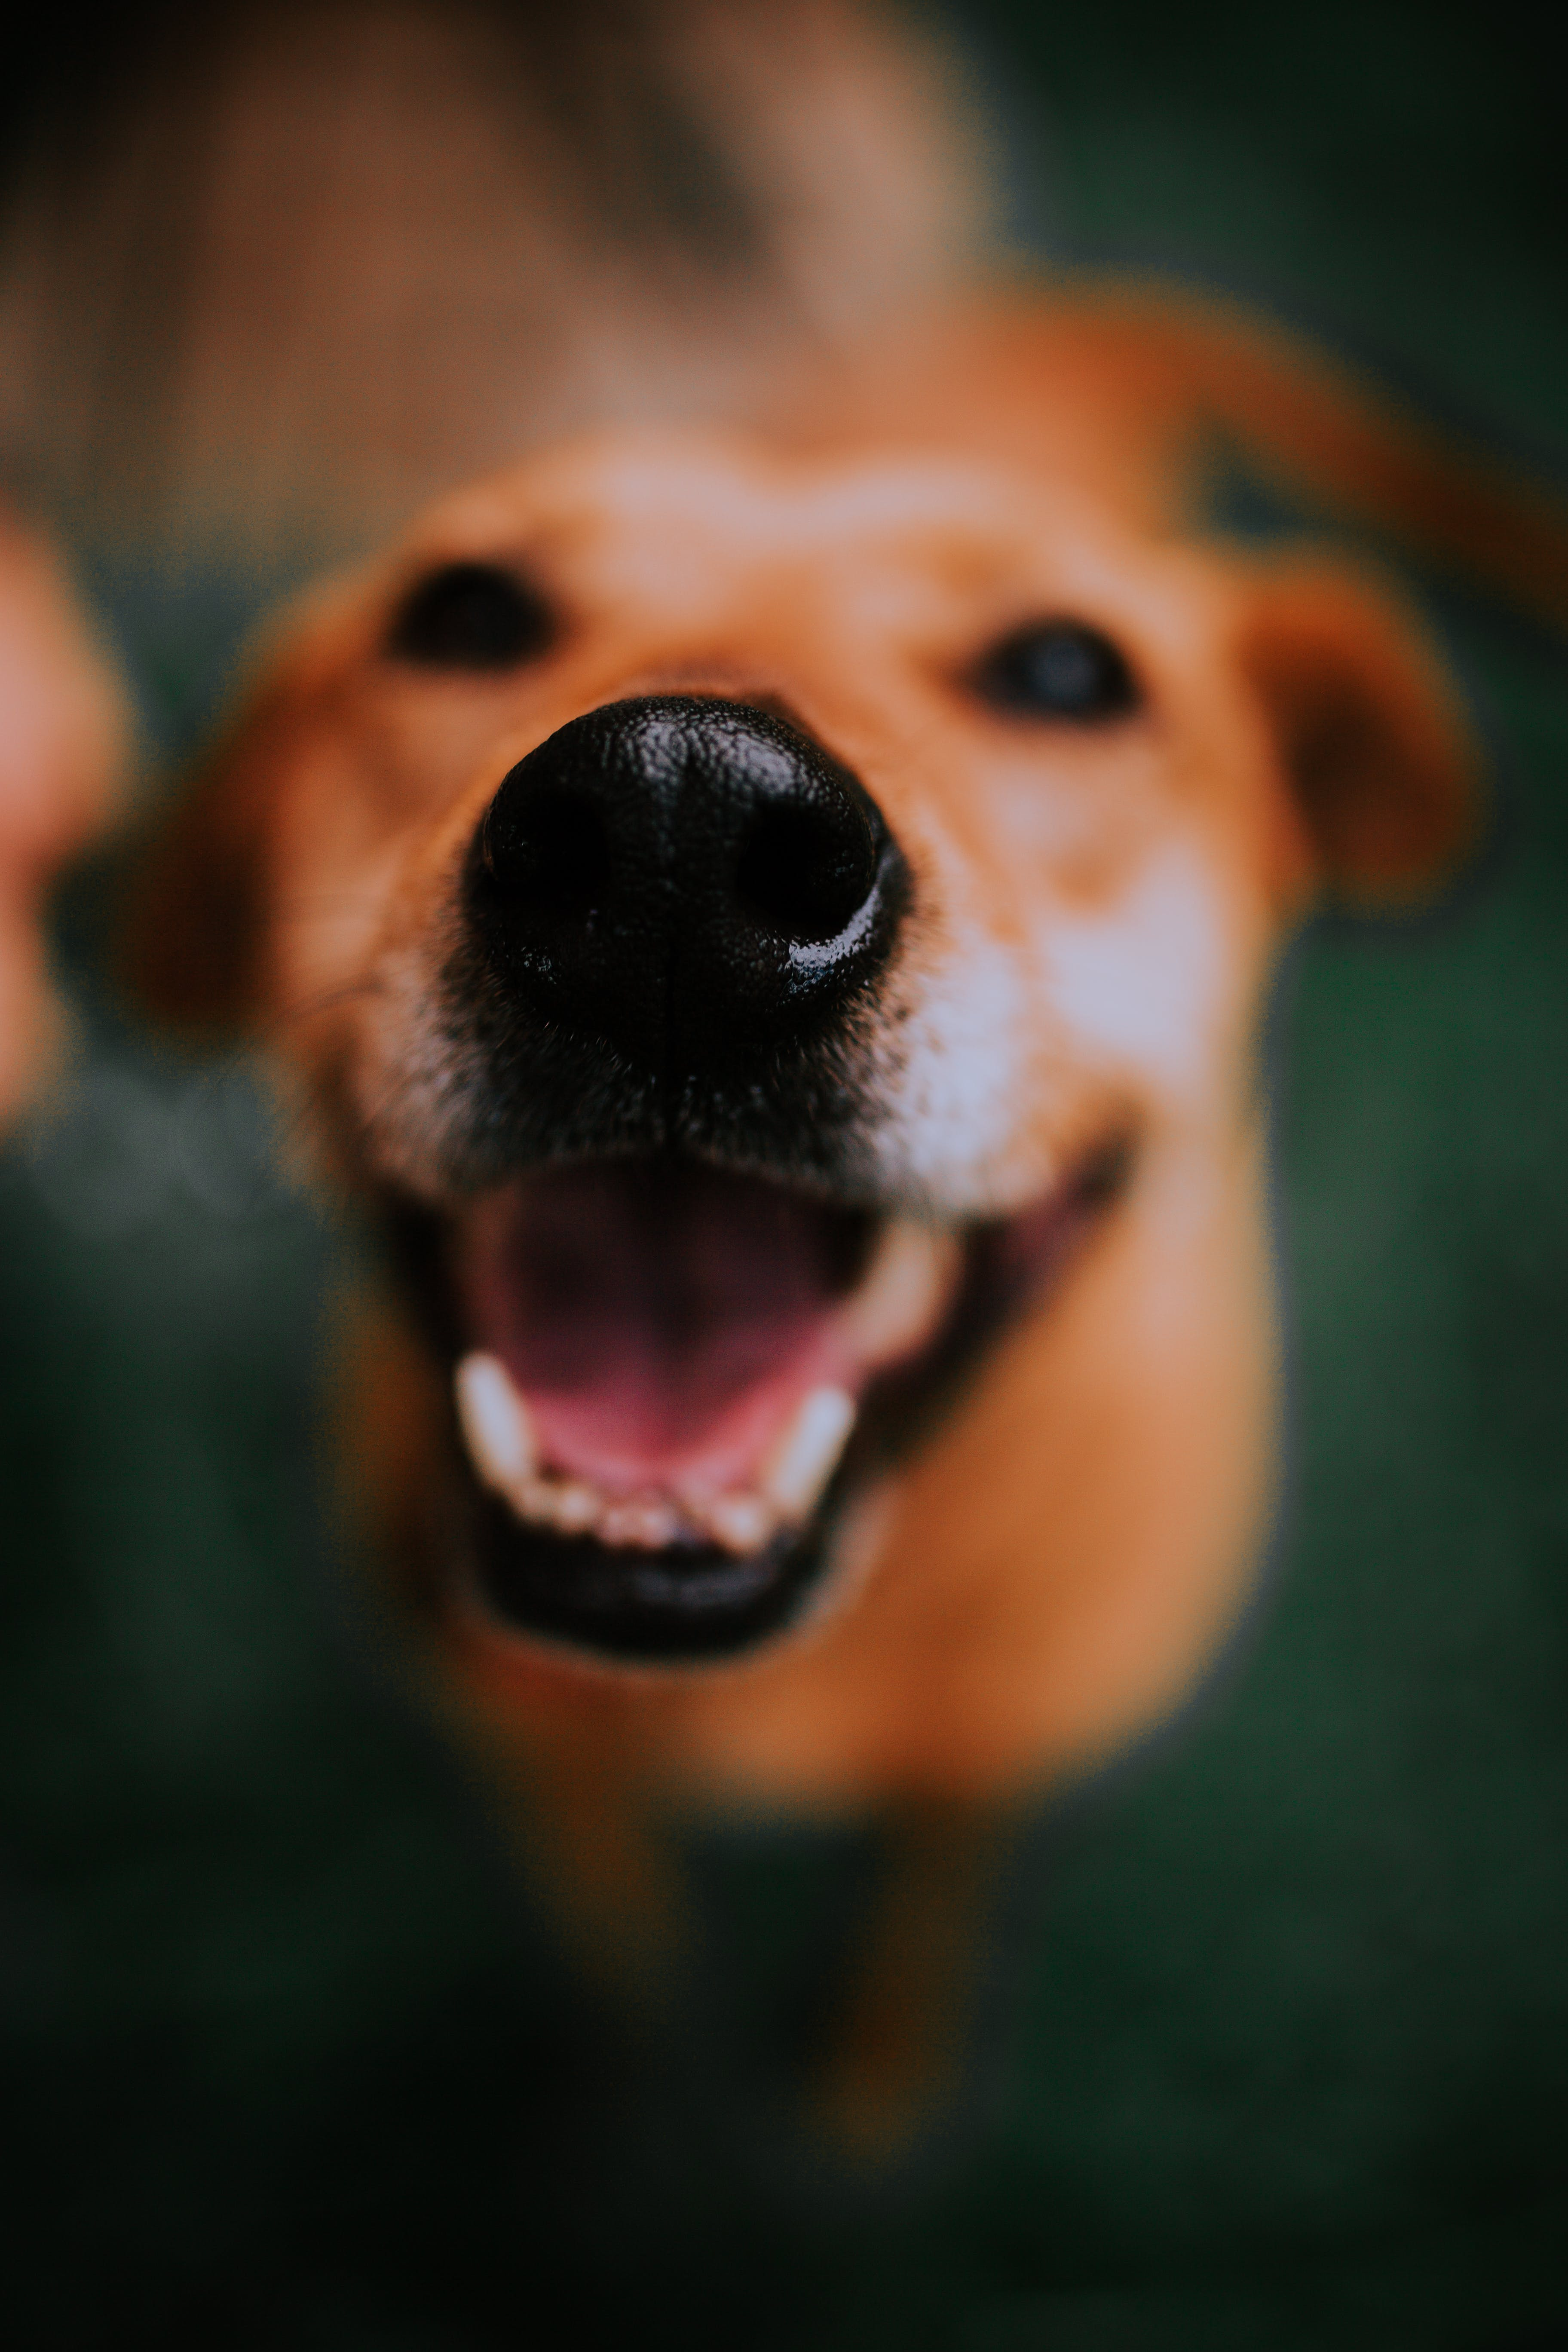 Close-up Photo of a Dog's Snout